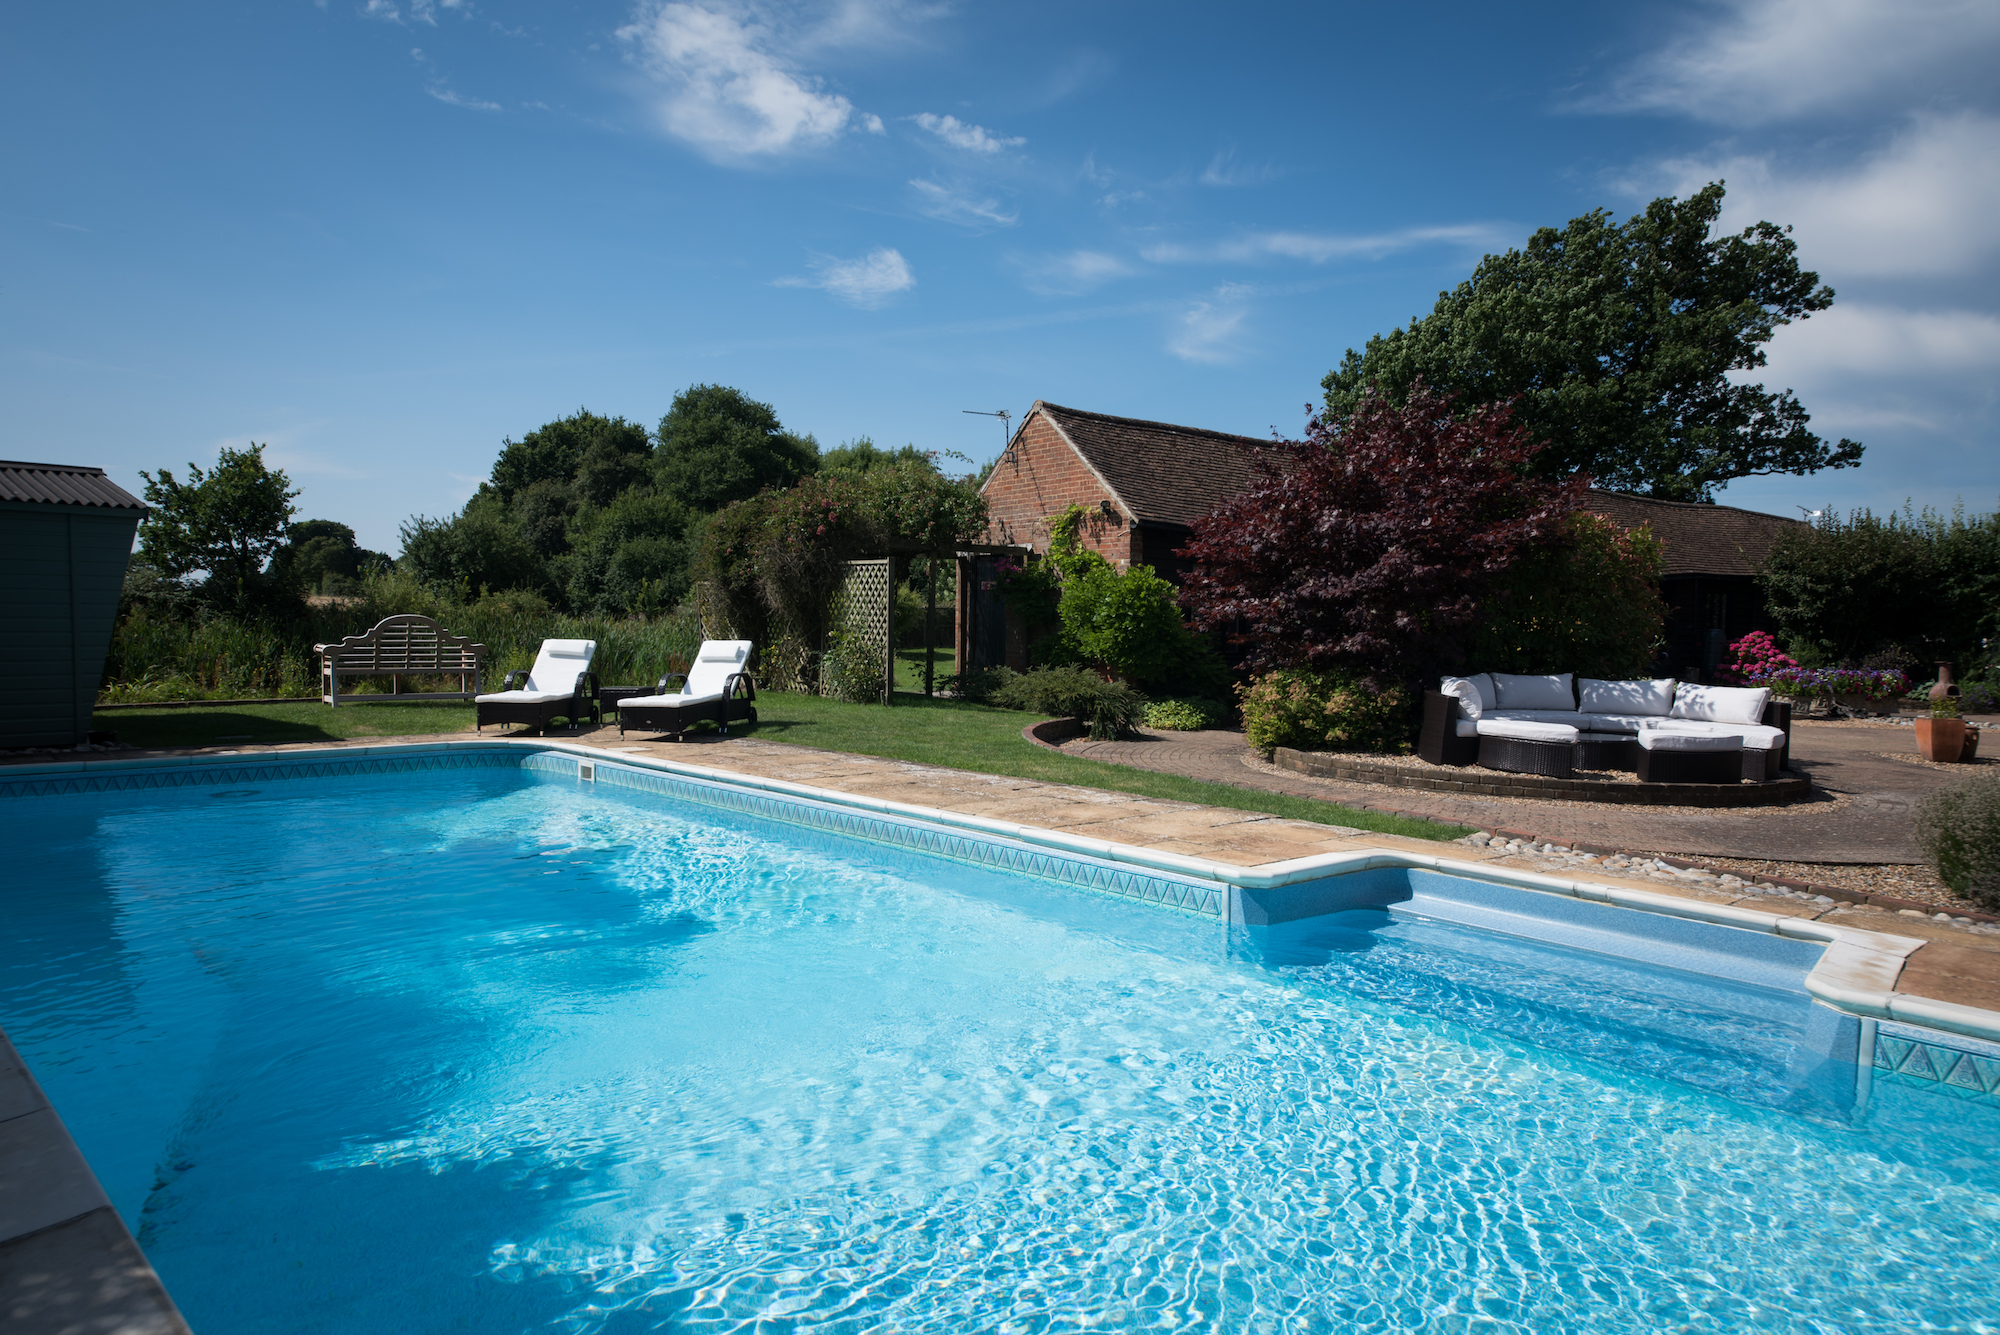 Mallard cottage luxury holiday rentals in kent uk for Luxury holiday rentals uk